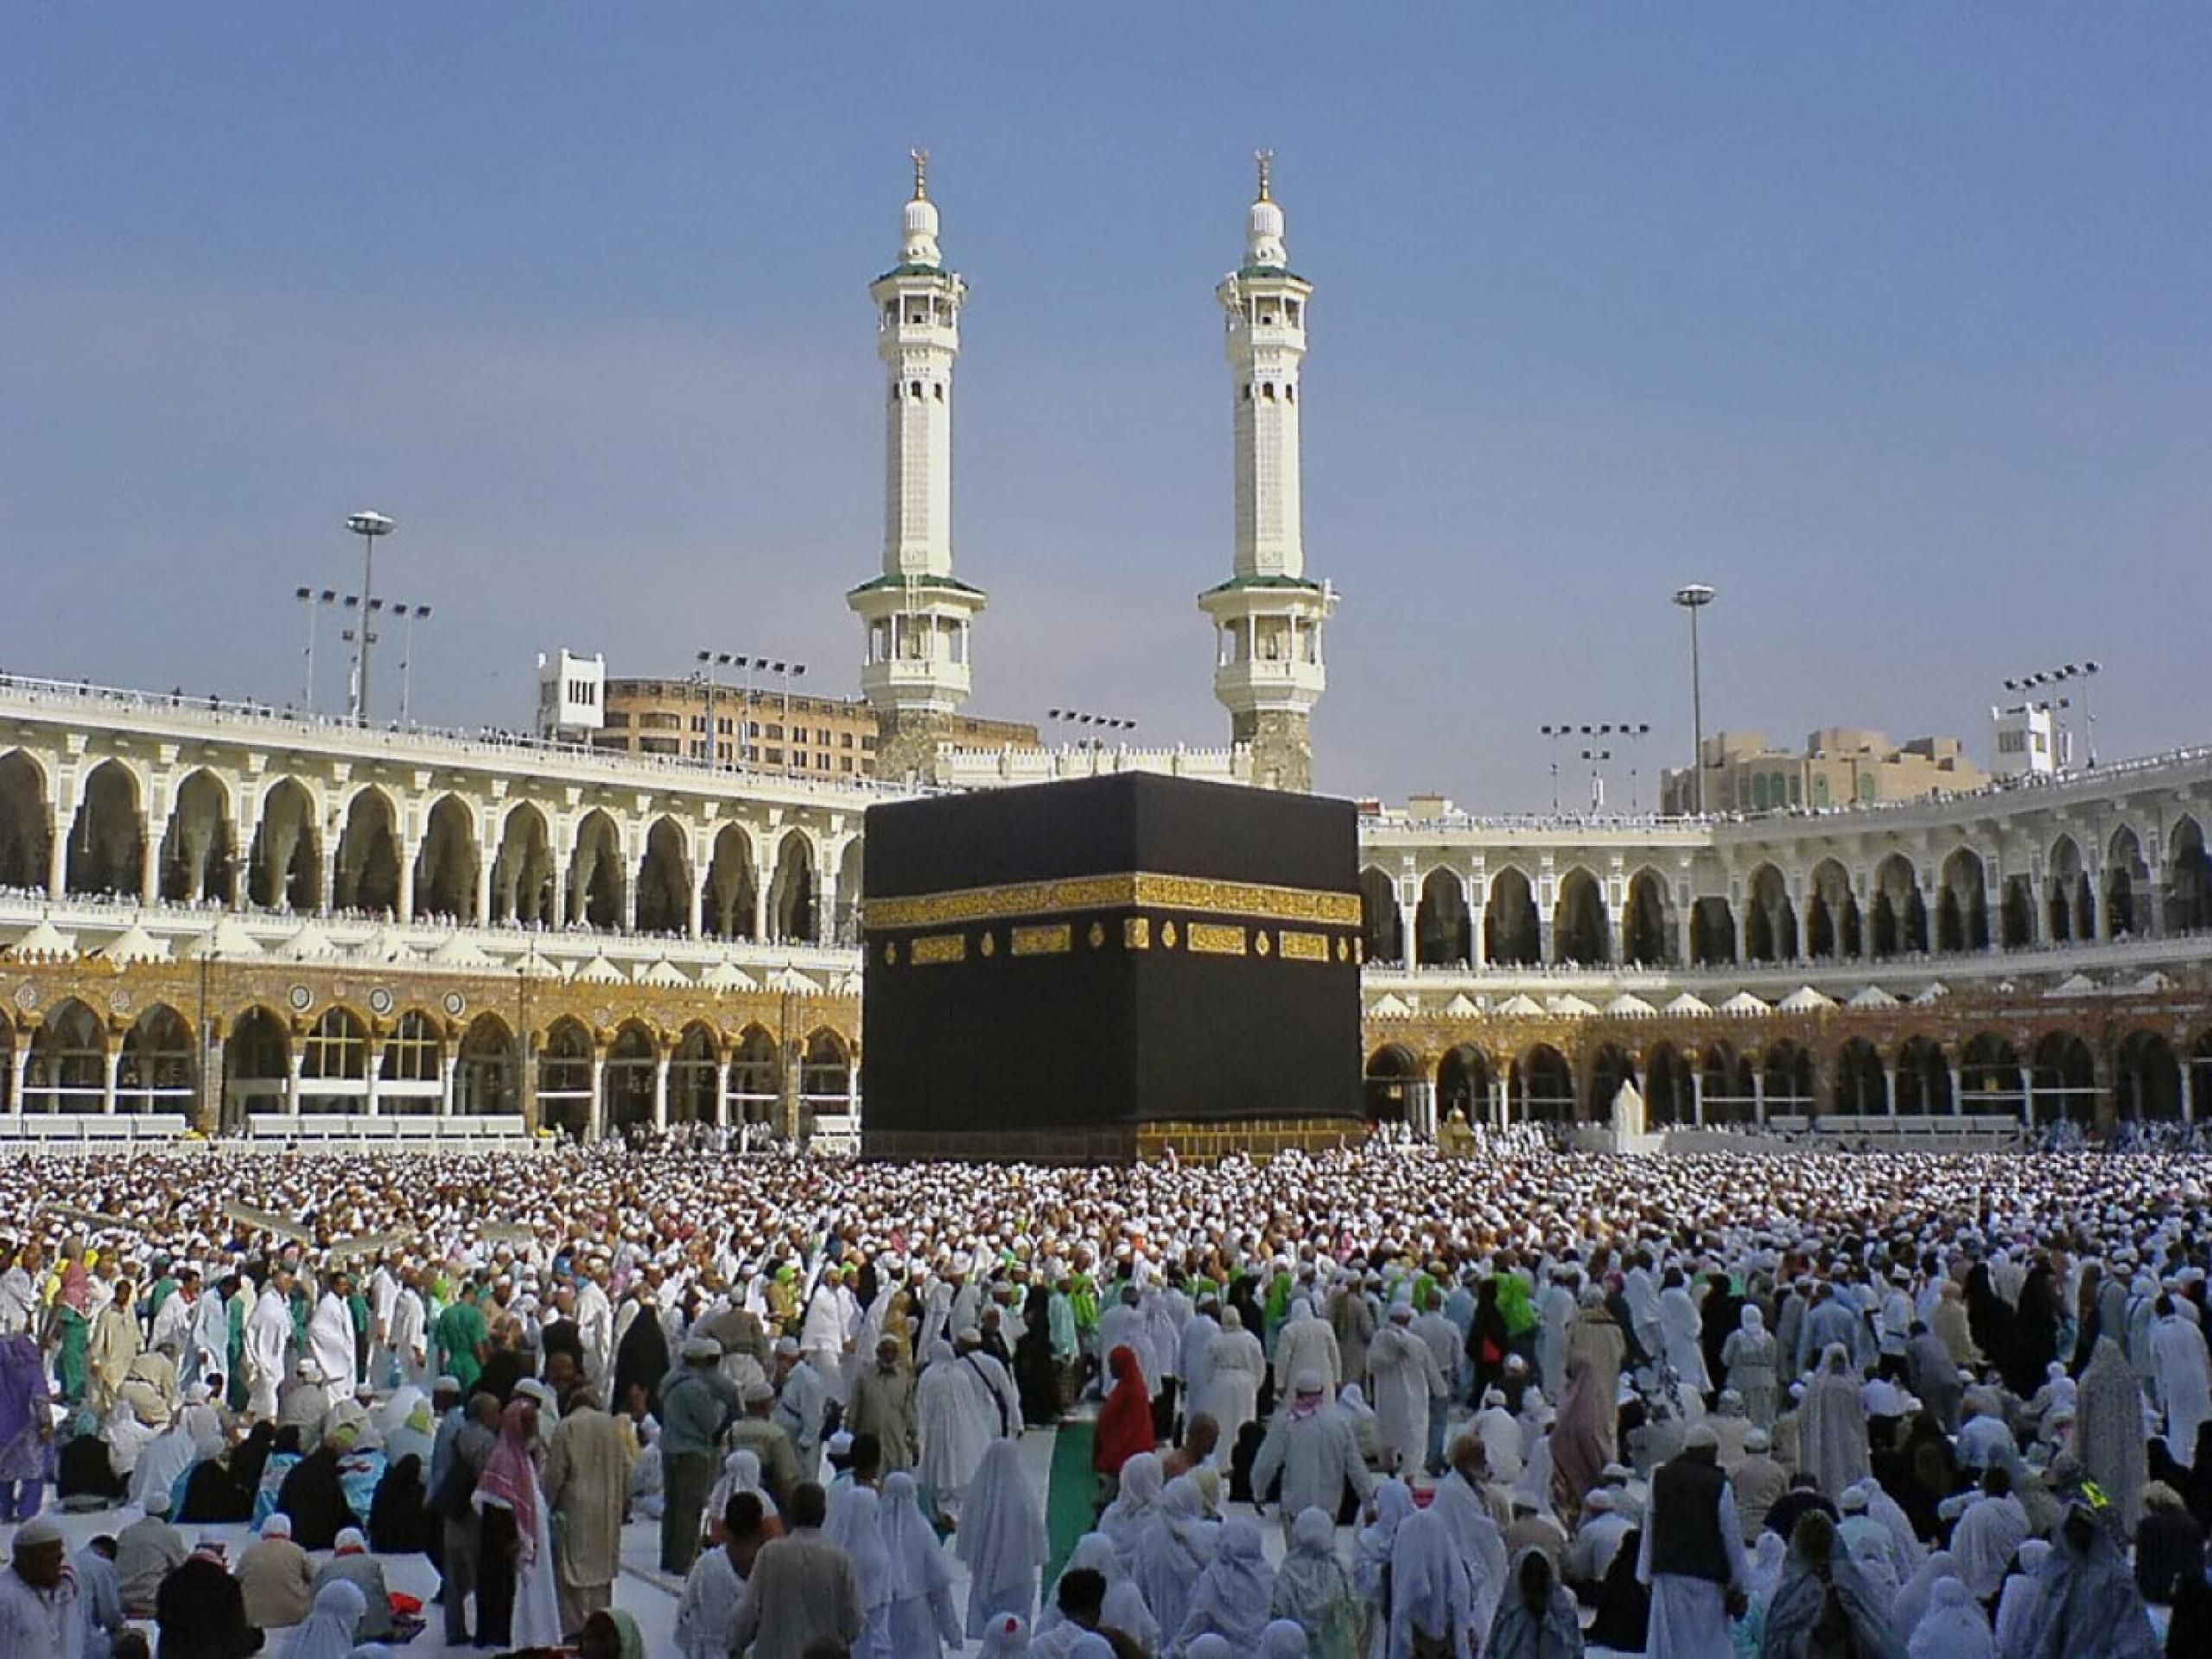 Download Free Mecca Kabba World City 525678 Hd Wallpapers